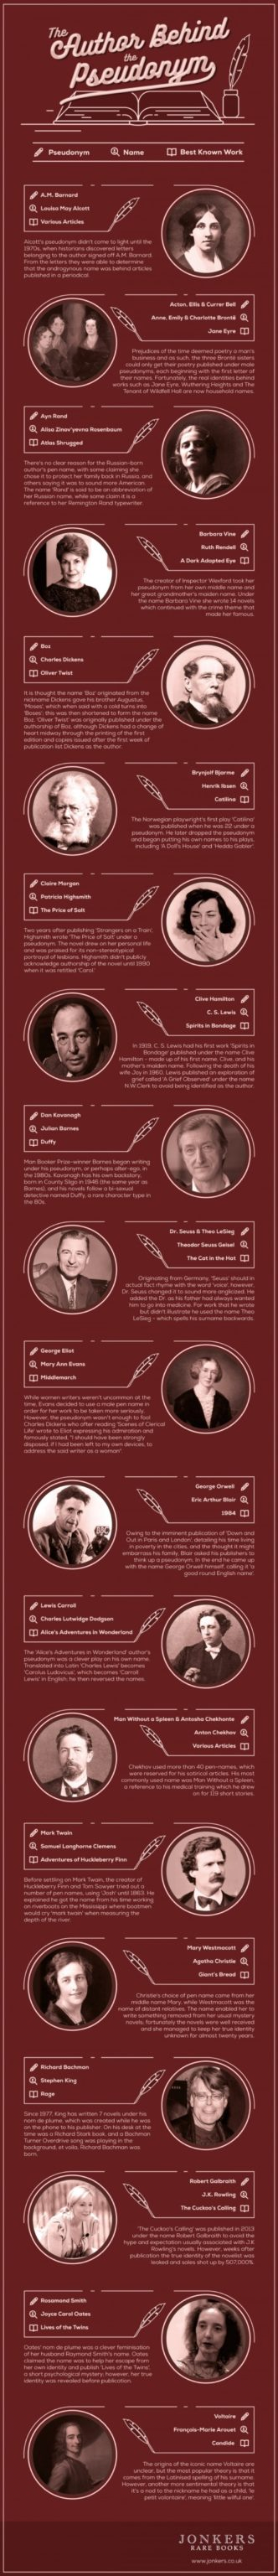 The author behind the pesudonym #infographic